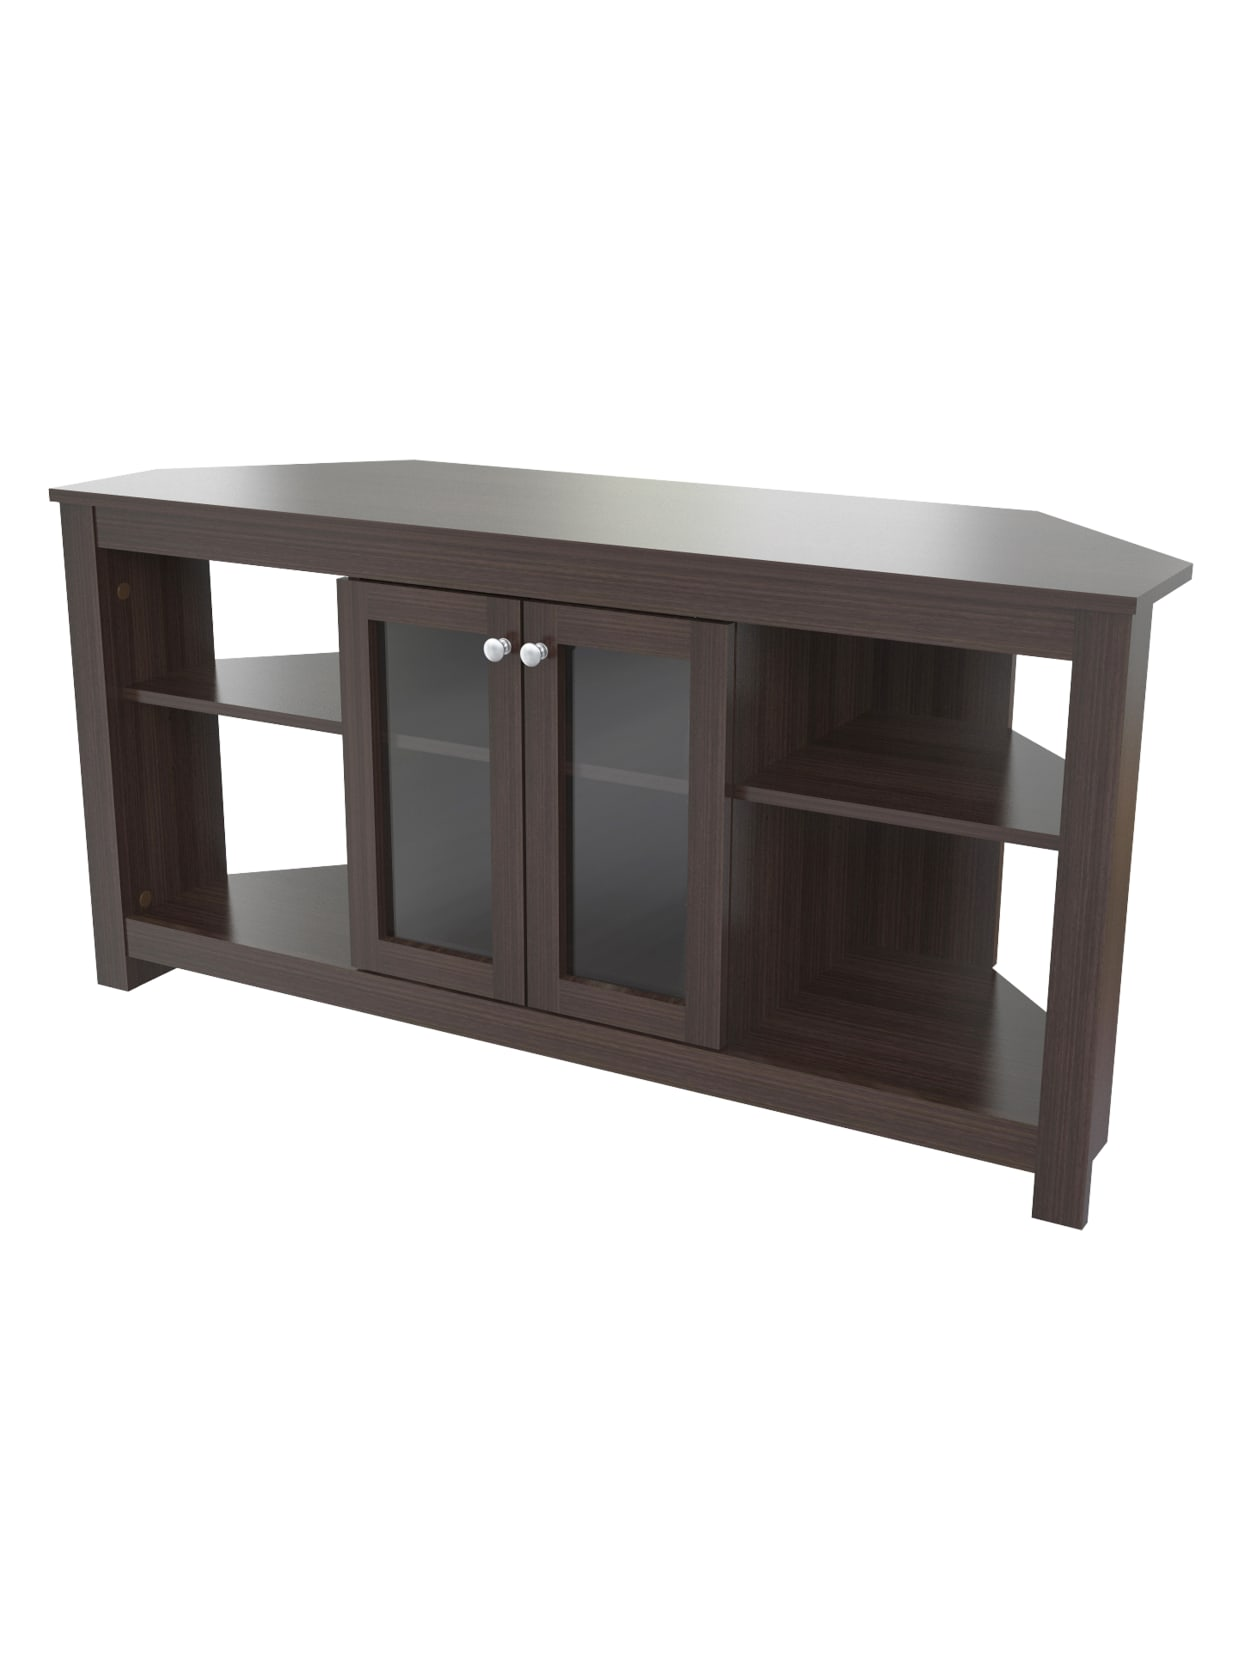 Inval Corner Tv Stand Wdoors Espresso Office Depot